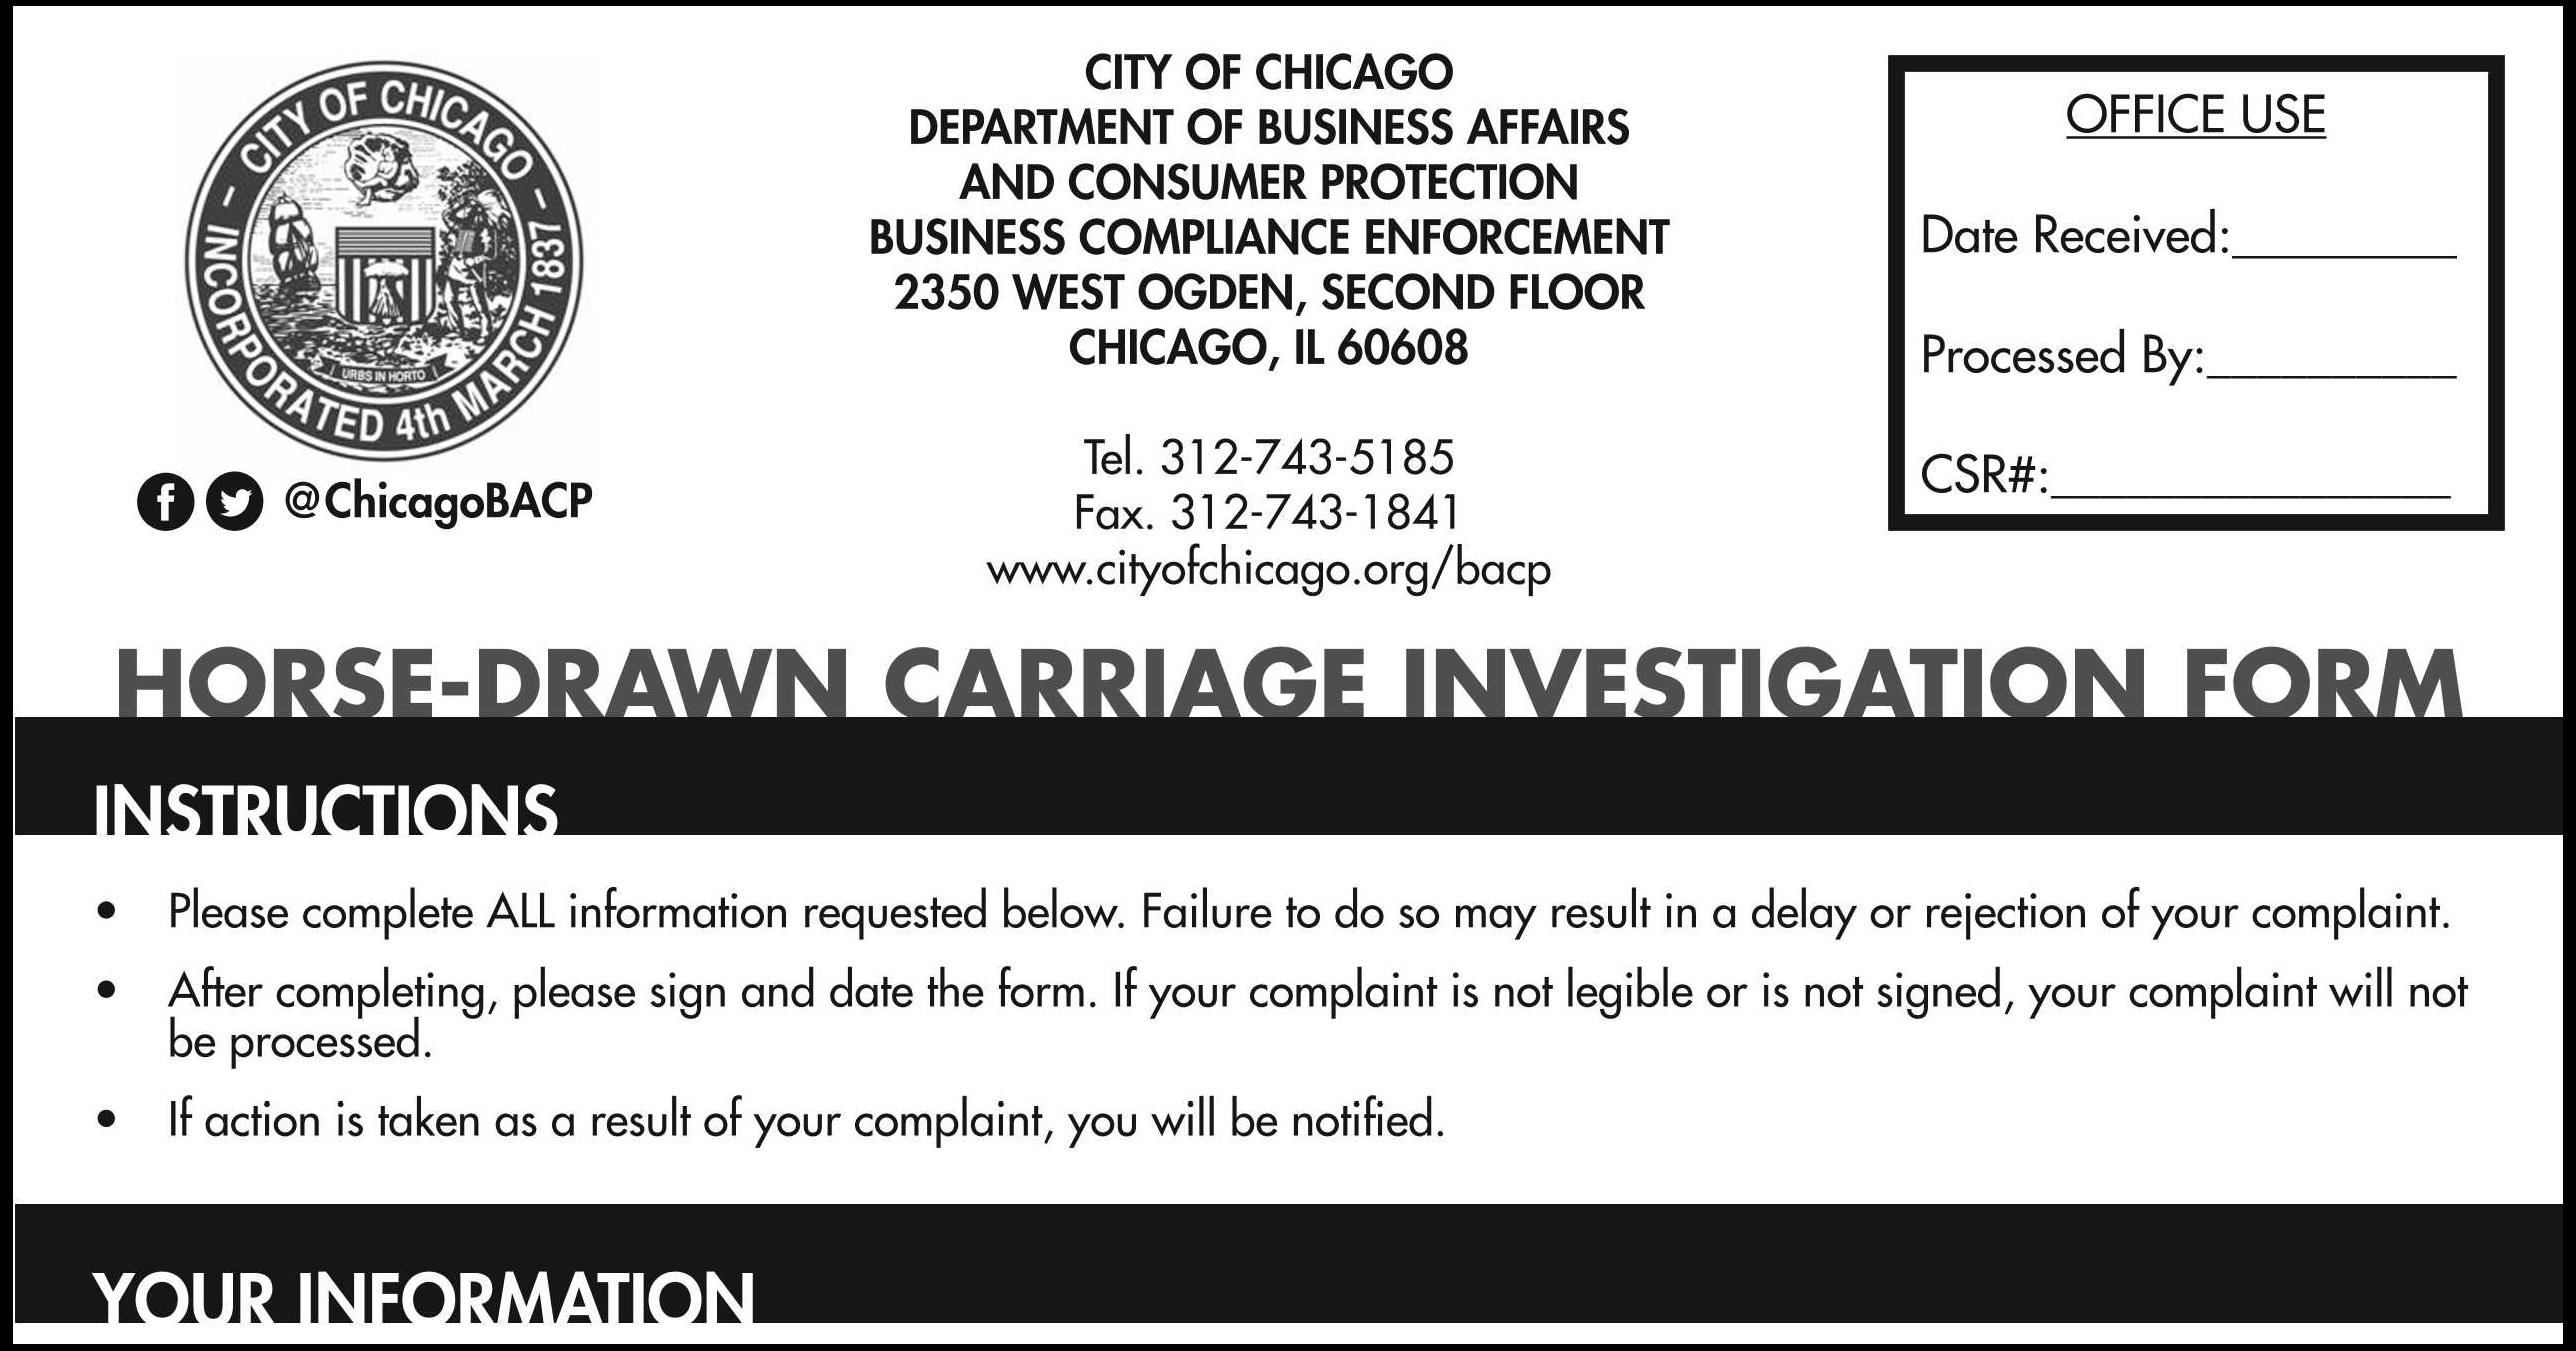 Complaints filed by Chicago Alliance for Animals have coincided with a spike in violations against horse-drawn carriage operators. (Chicago Business Affairs and Consumer Protection)